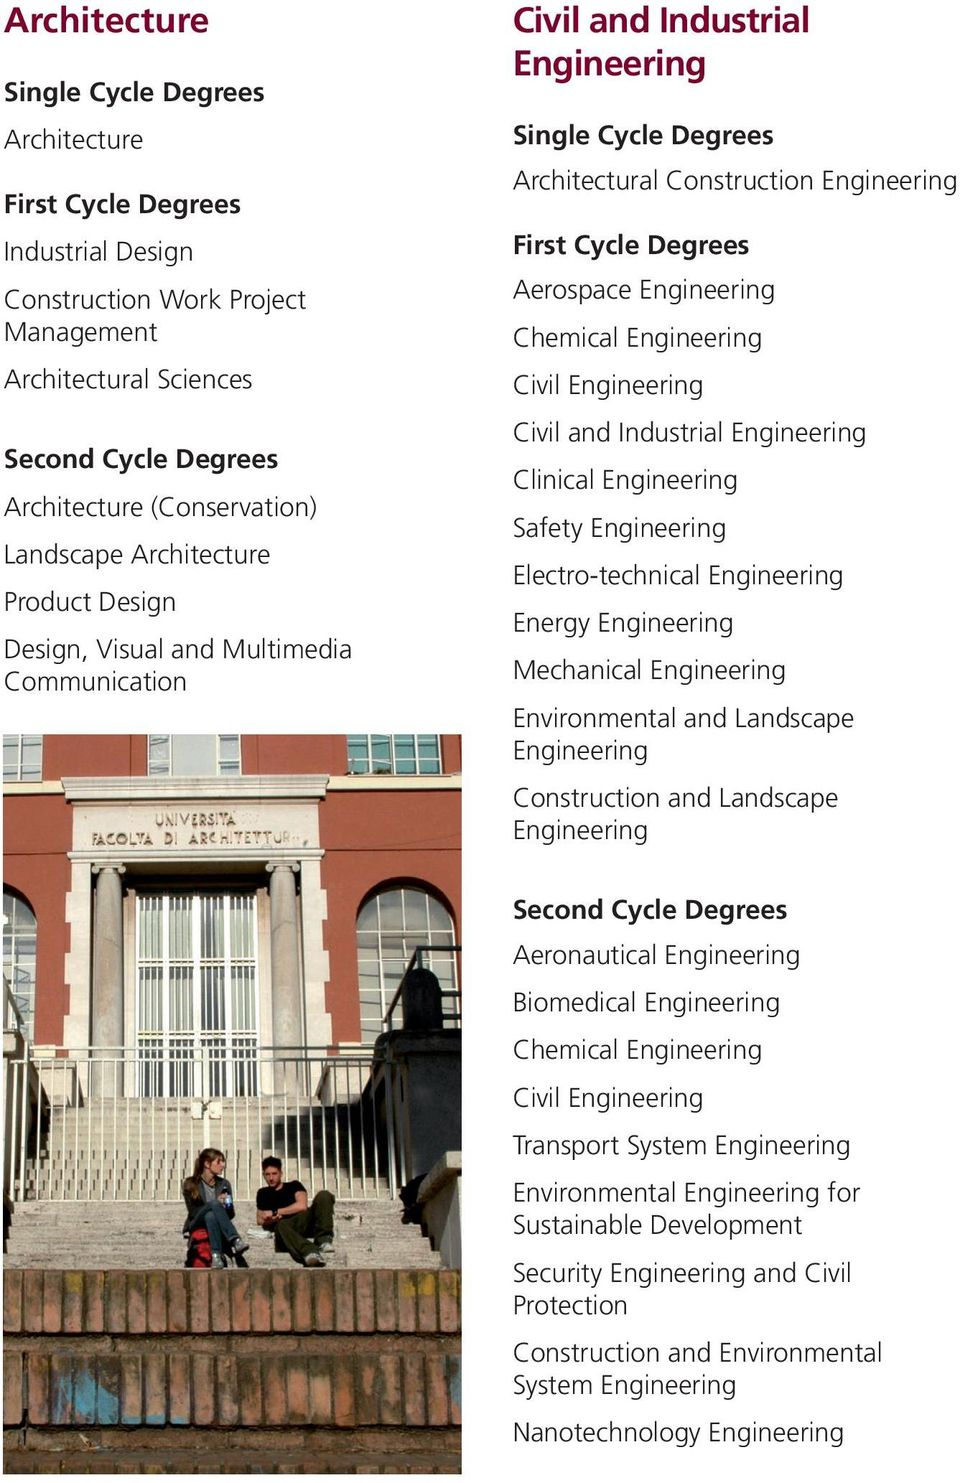 Energy Engineering Mechanical Engineering Environmental and Landscape Engineering Construction and Landscape Engineering Aeronautical Engineering Biomedical Engineering Chemical Engineering Civil